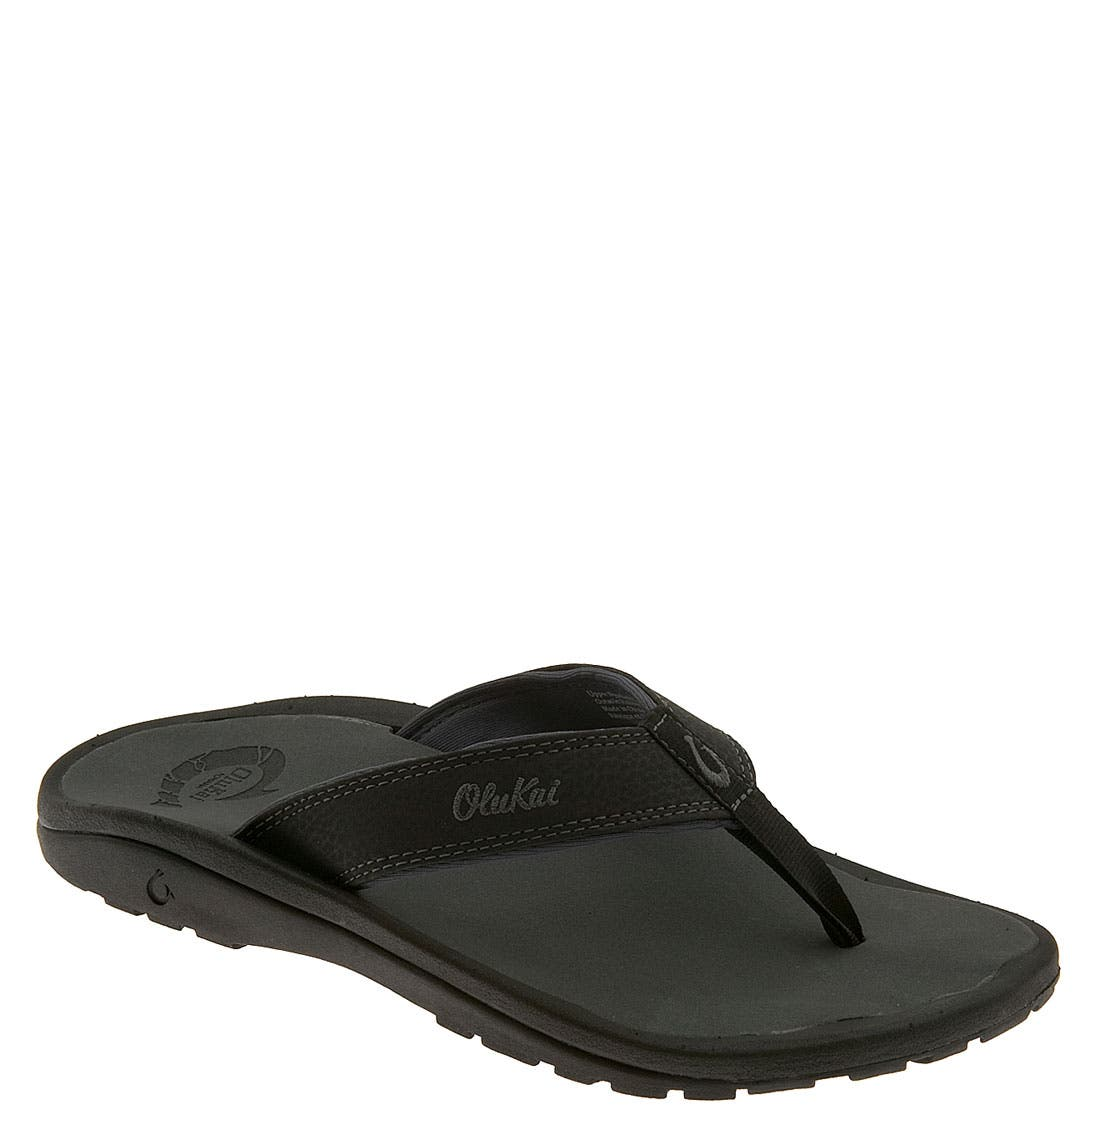 'Ohana' Flip Flop,                             Main thumbnail 1, color,                             BLACK/ DARK SHADOW